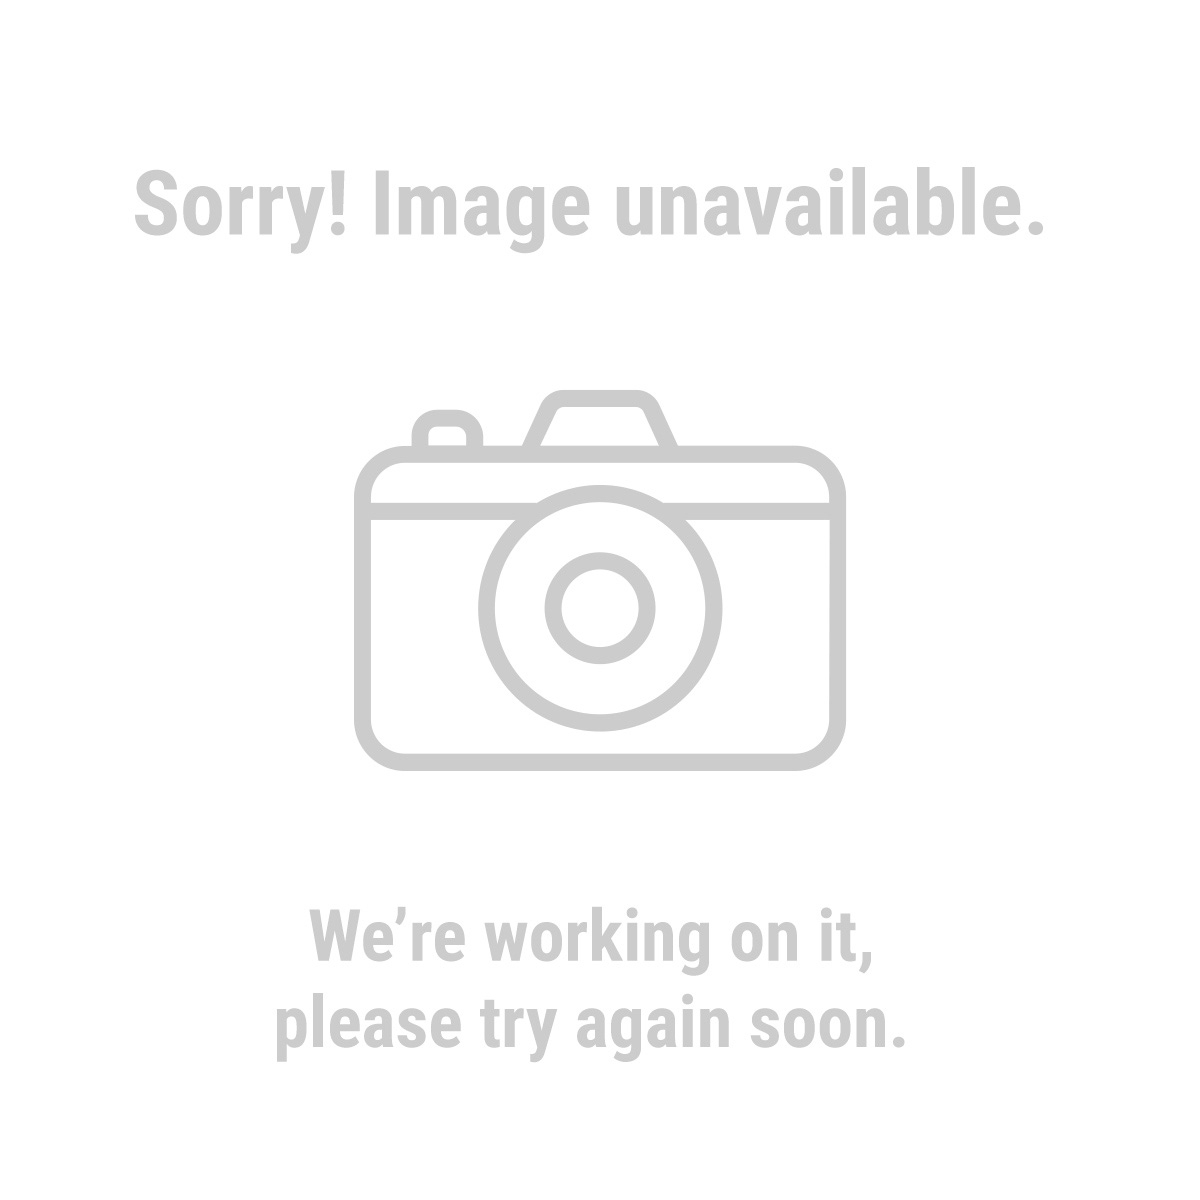 Pittsburgh Professional 67894 3/8 in. Drive Metric Bolt Extractor Sockets 9 Pc